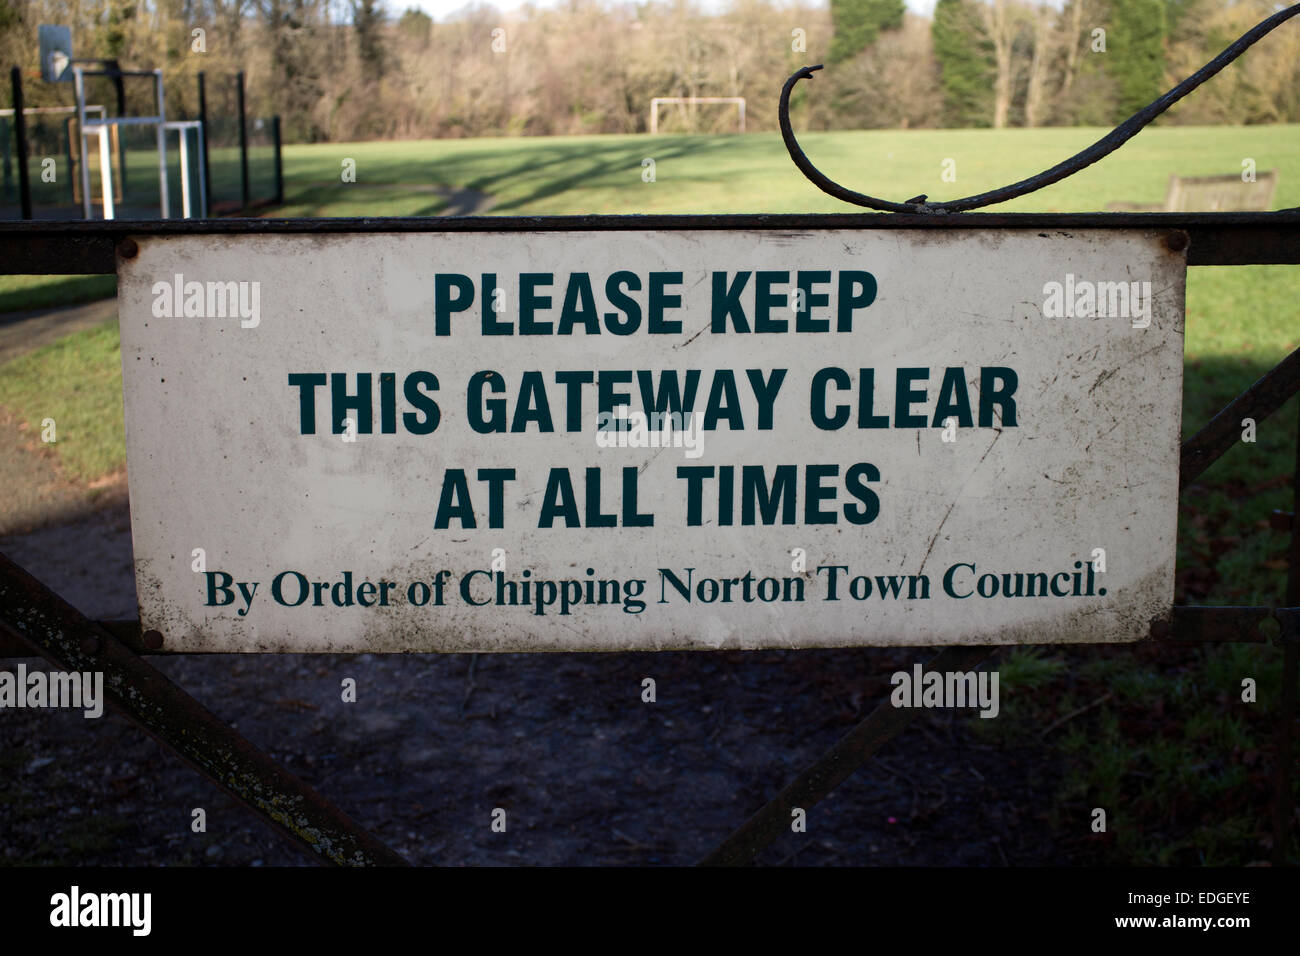 Chipping Norton Town Council sign, Oxfordshire, UK - Stock Image